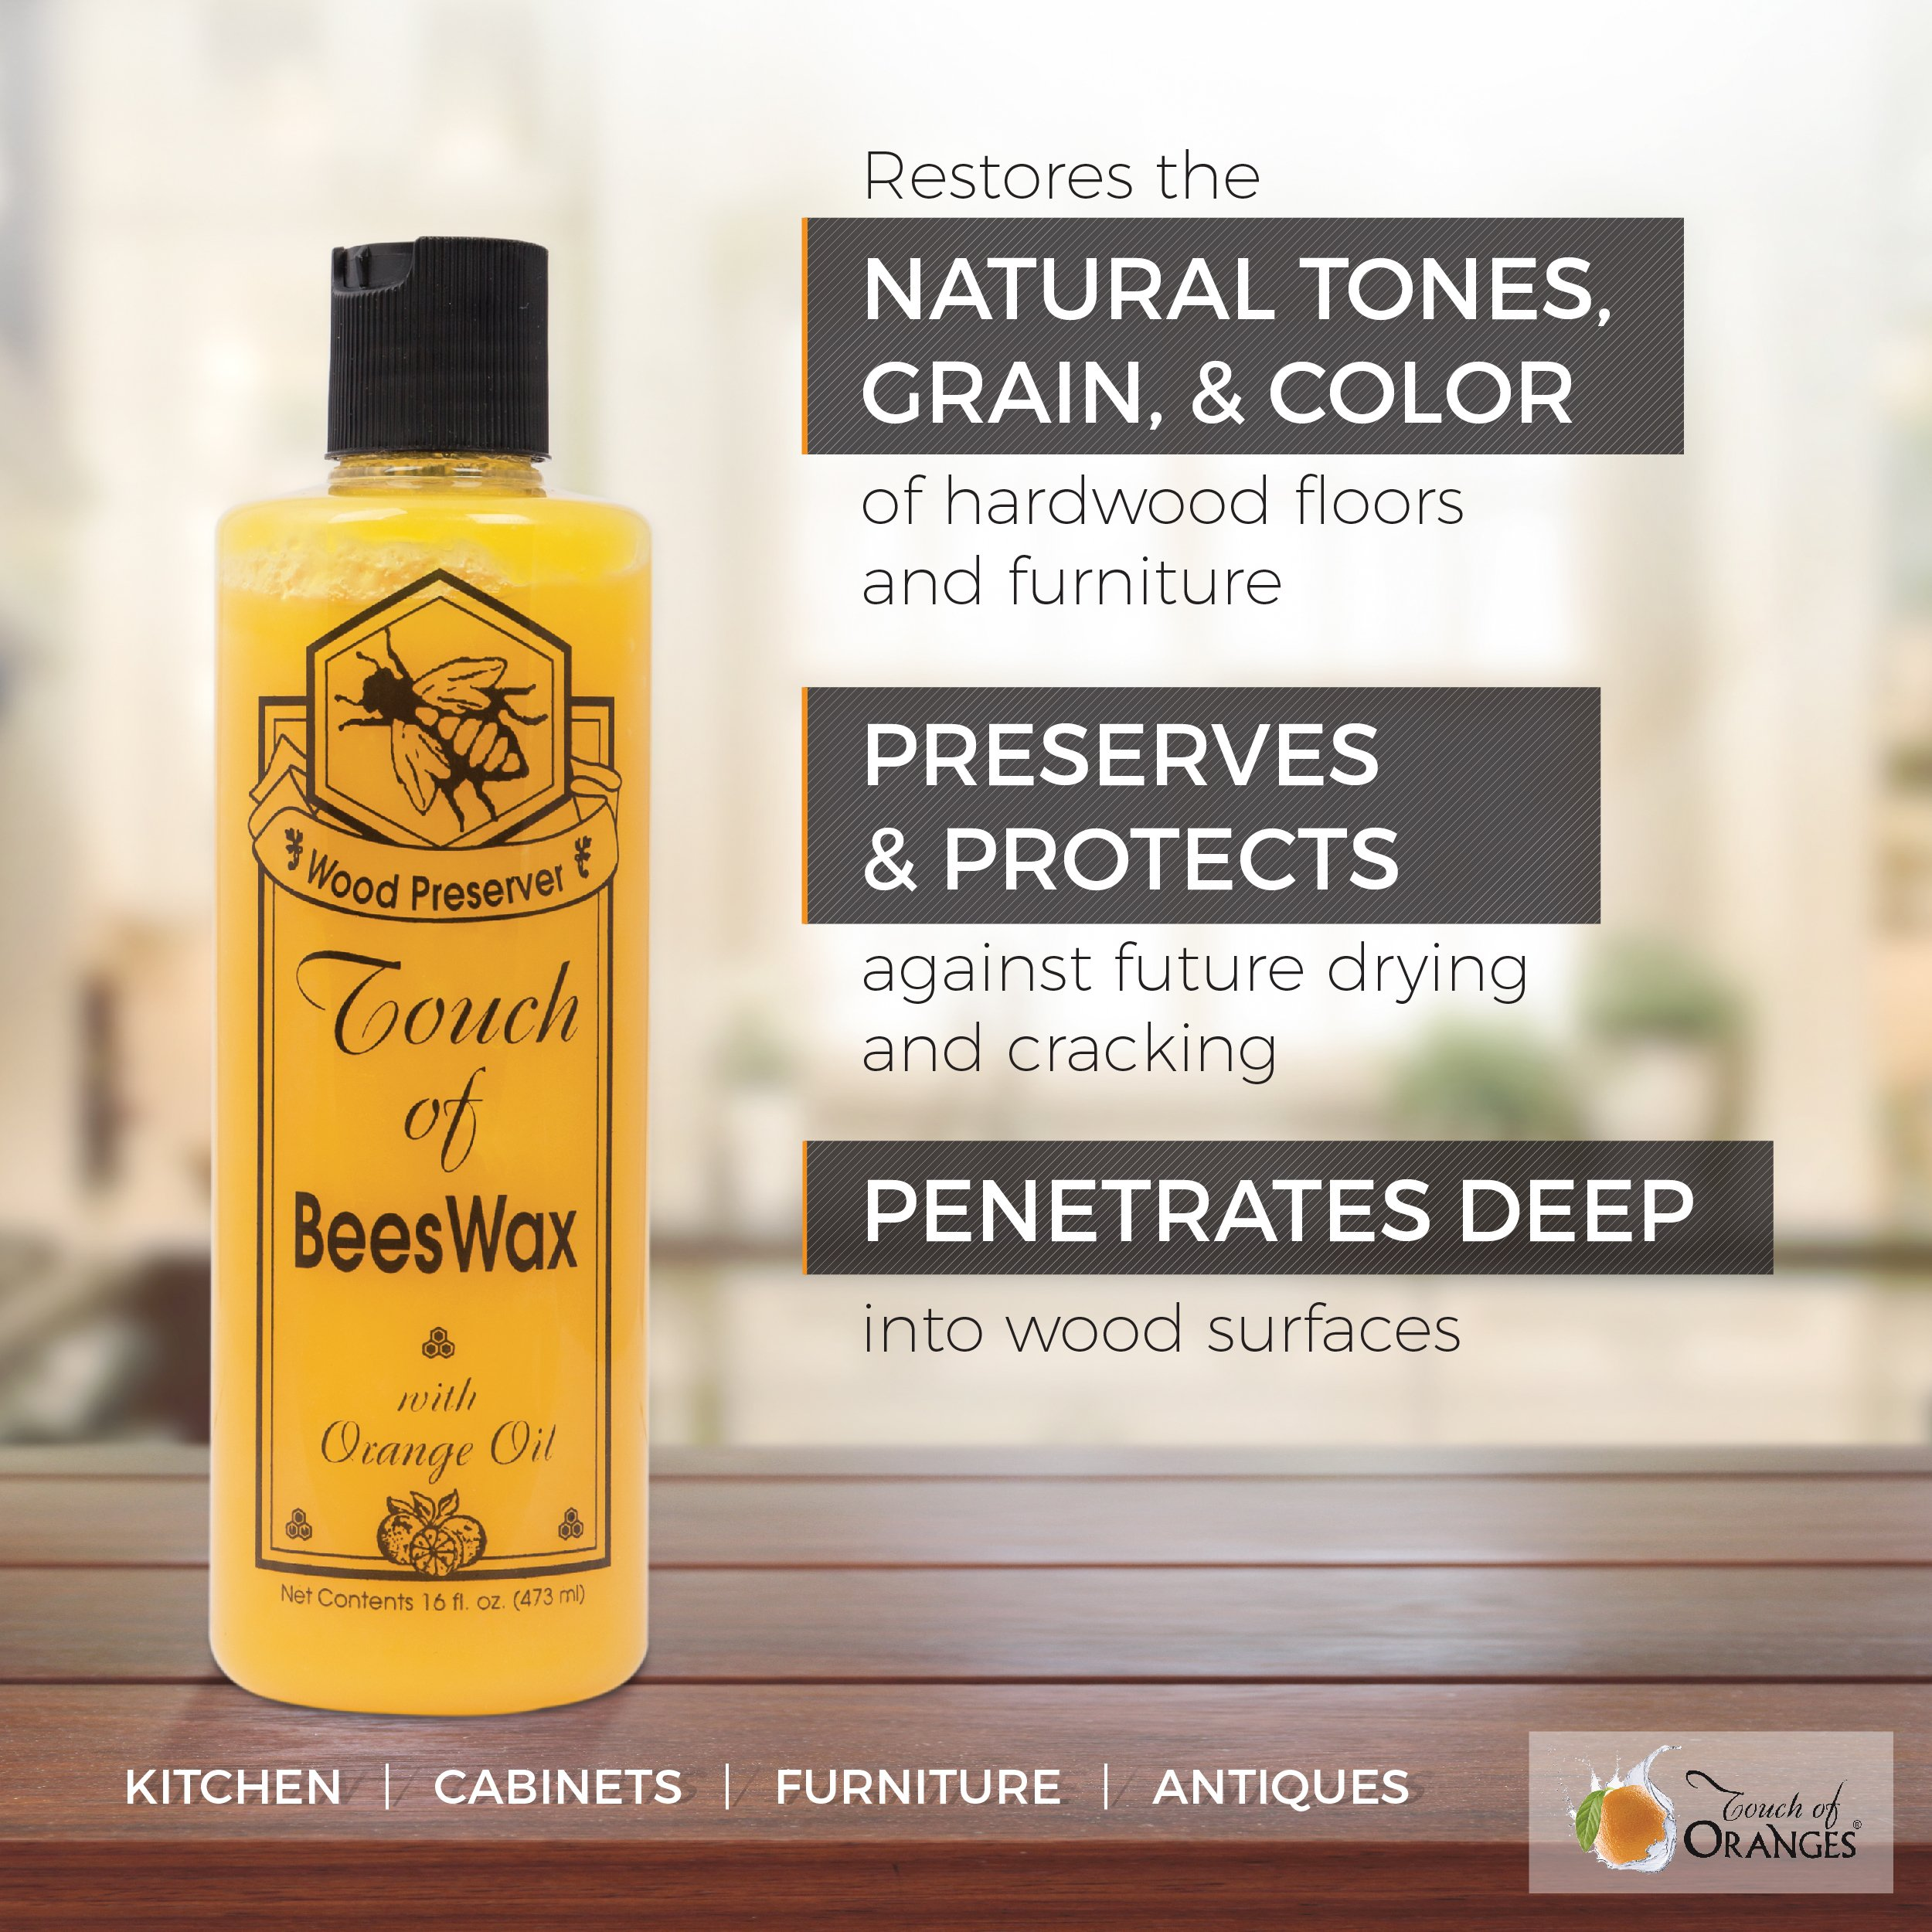 Complete Wood Restoration Kit, Wood Floor Restorer, Orange Oil Cleaner 32 oz, Beeswax Furniture Polish 16 oz, Restore A Finish 16 oz, Cover Scratches and Blemishes (Dark Oak) by Touch Of Oranges